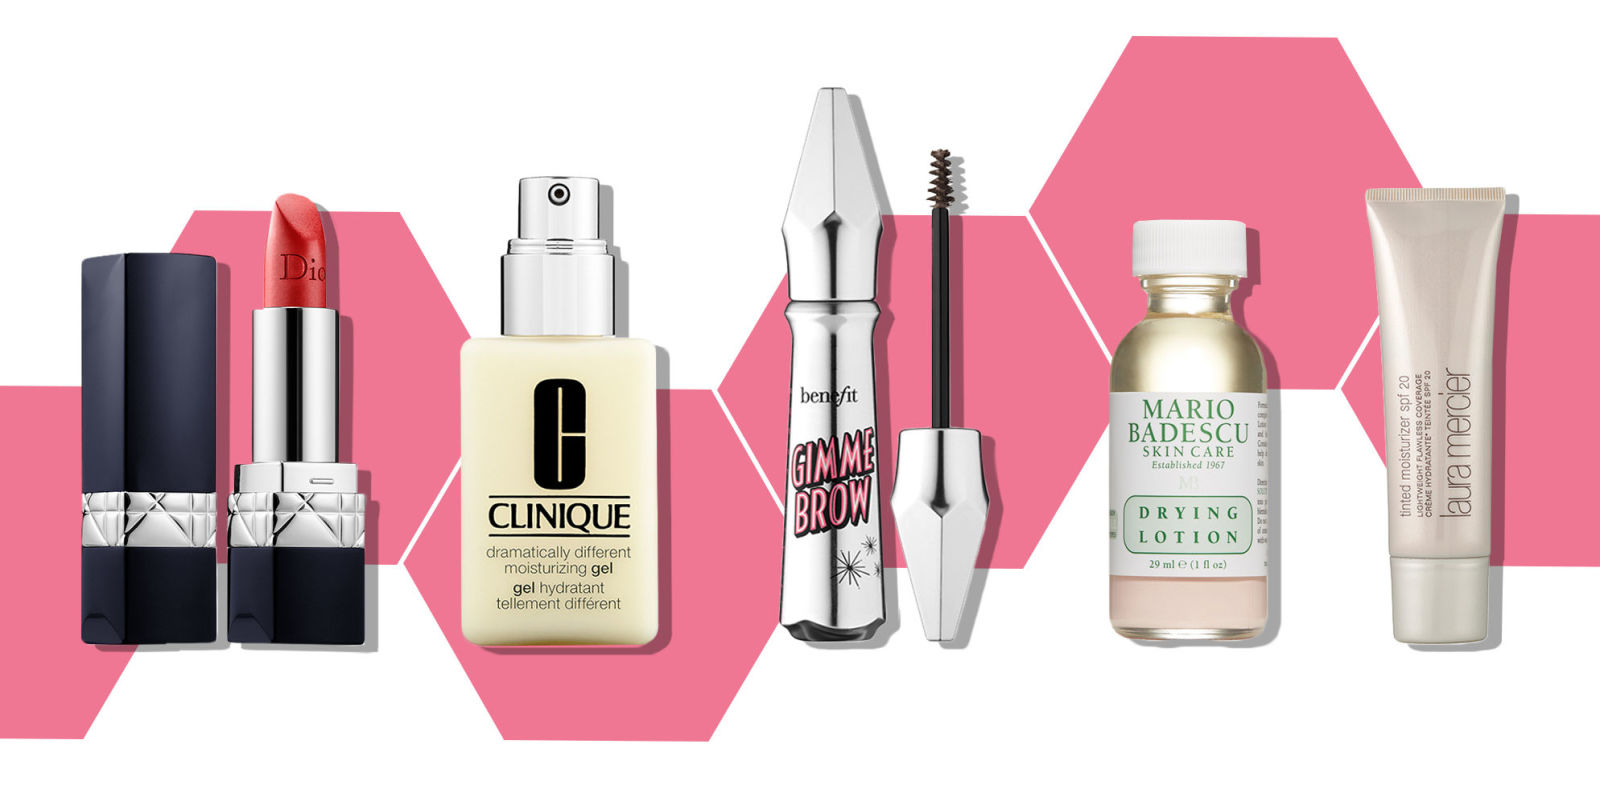 20 Most Iconic Beauty Products of All Time